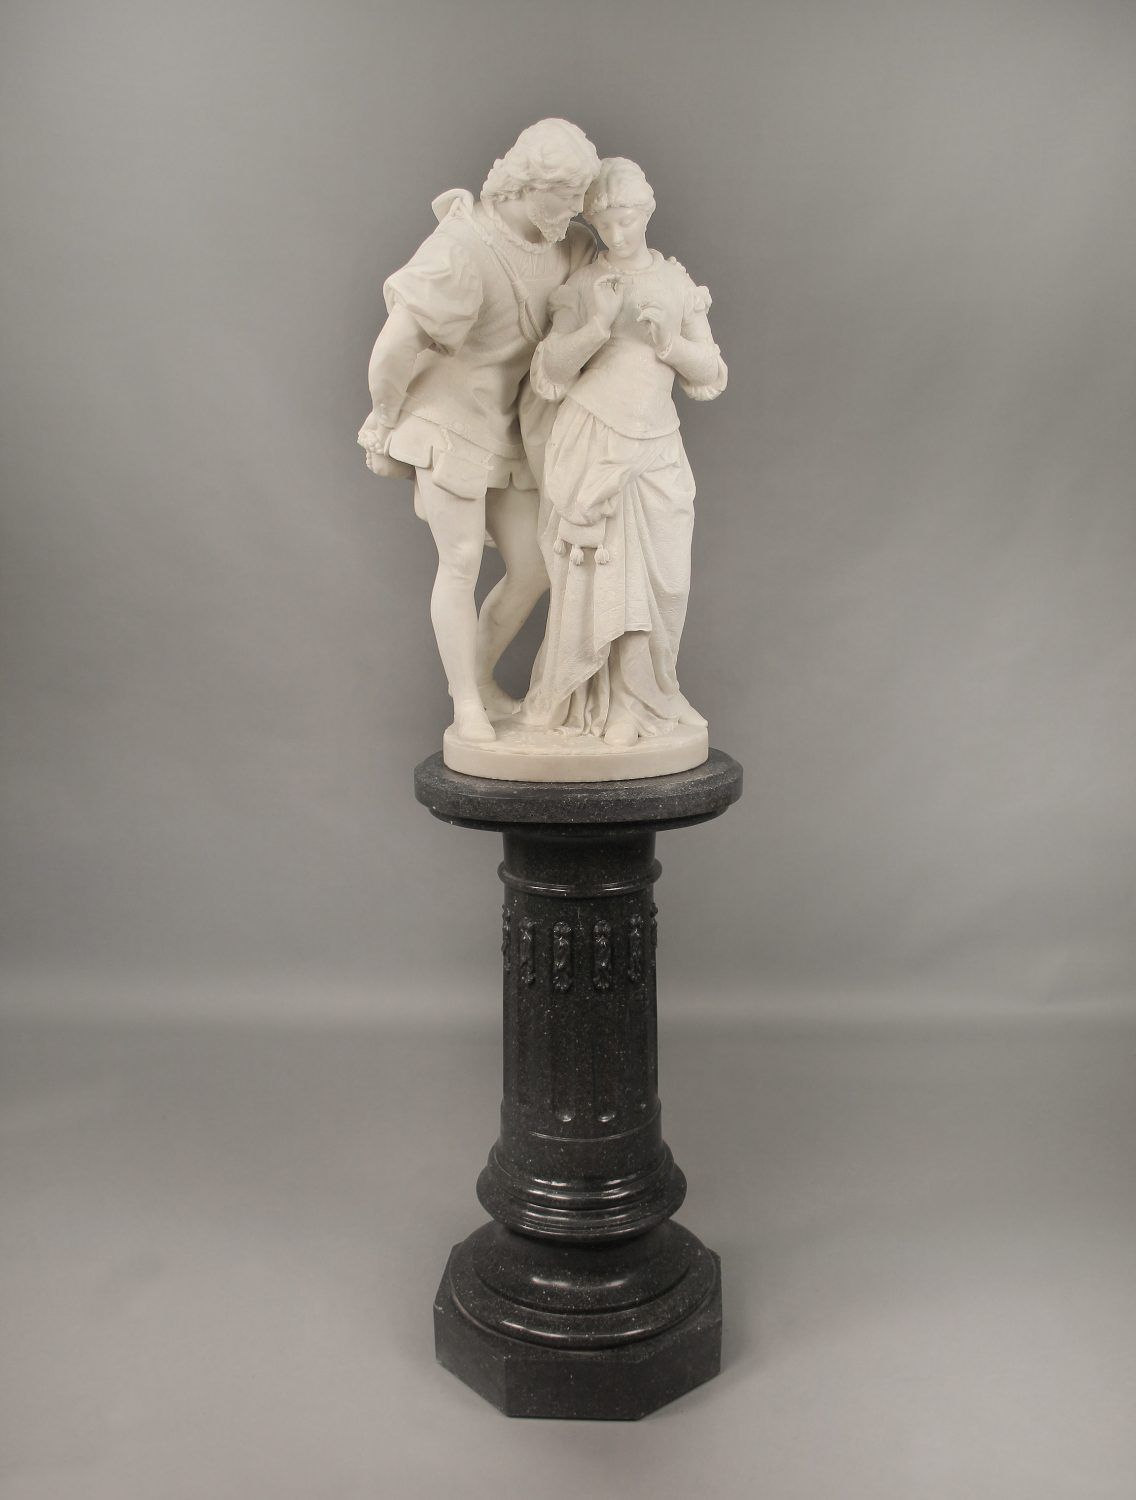 A Fantastic Late 19th Century Italian White Carrara Marble Entitled Paolo And Francesca By Pasquale Romanelli Charles Cheriff Galleries In 2020 Carrara Carrara Marble Marble Sculpture